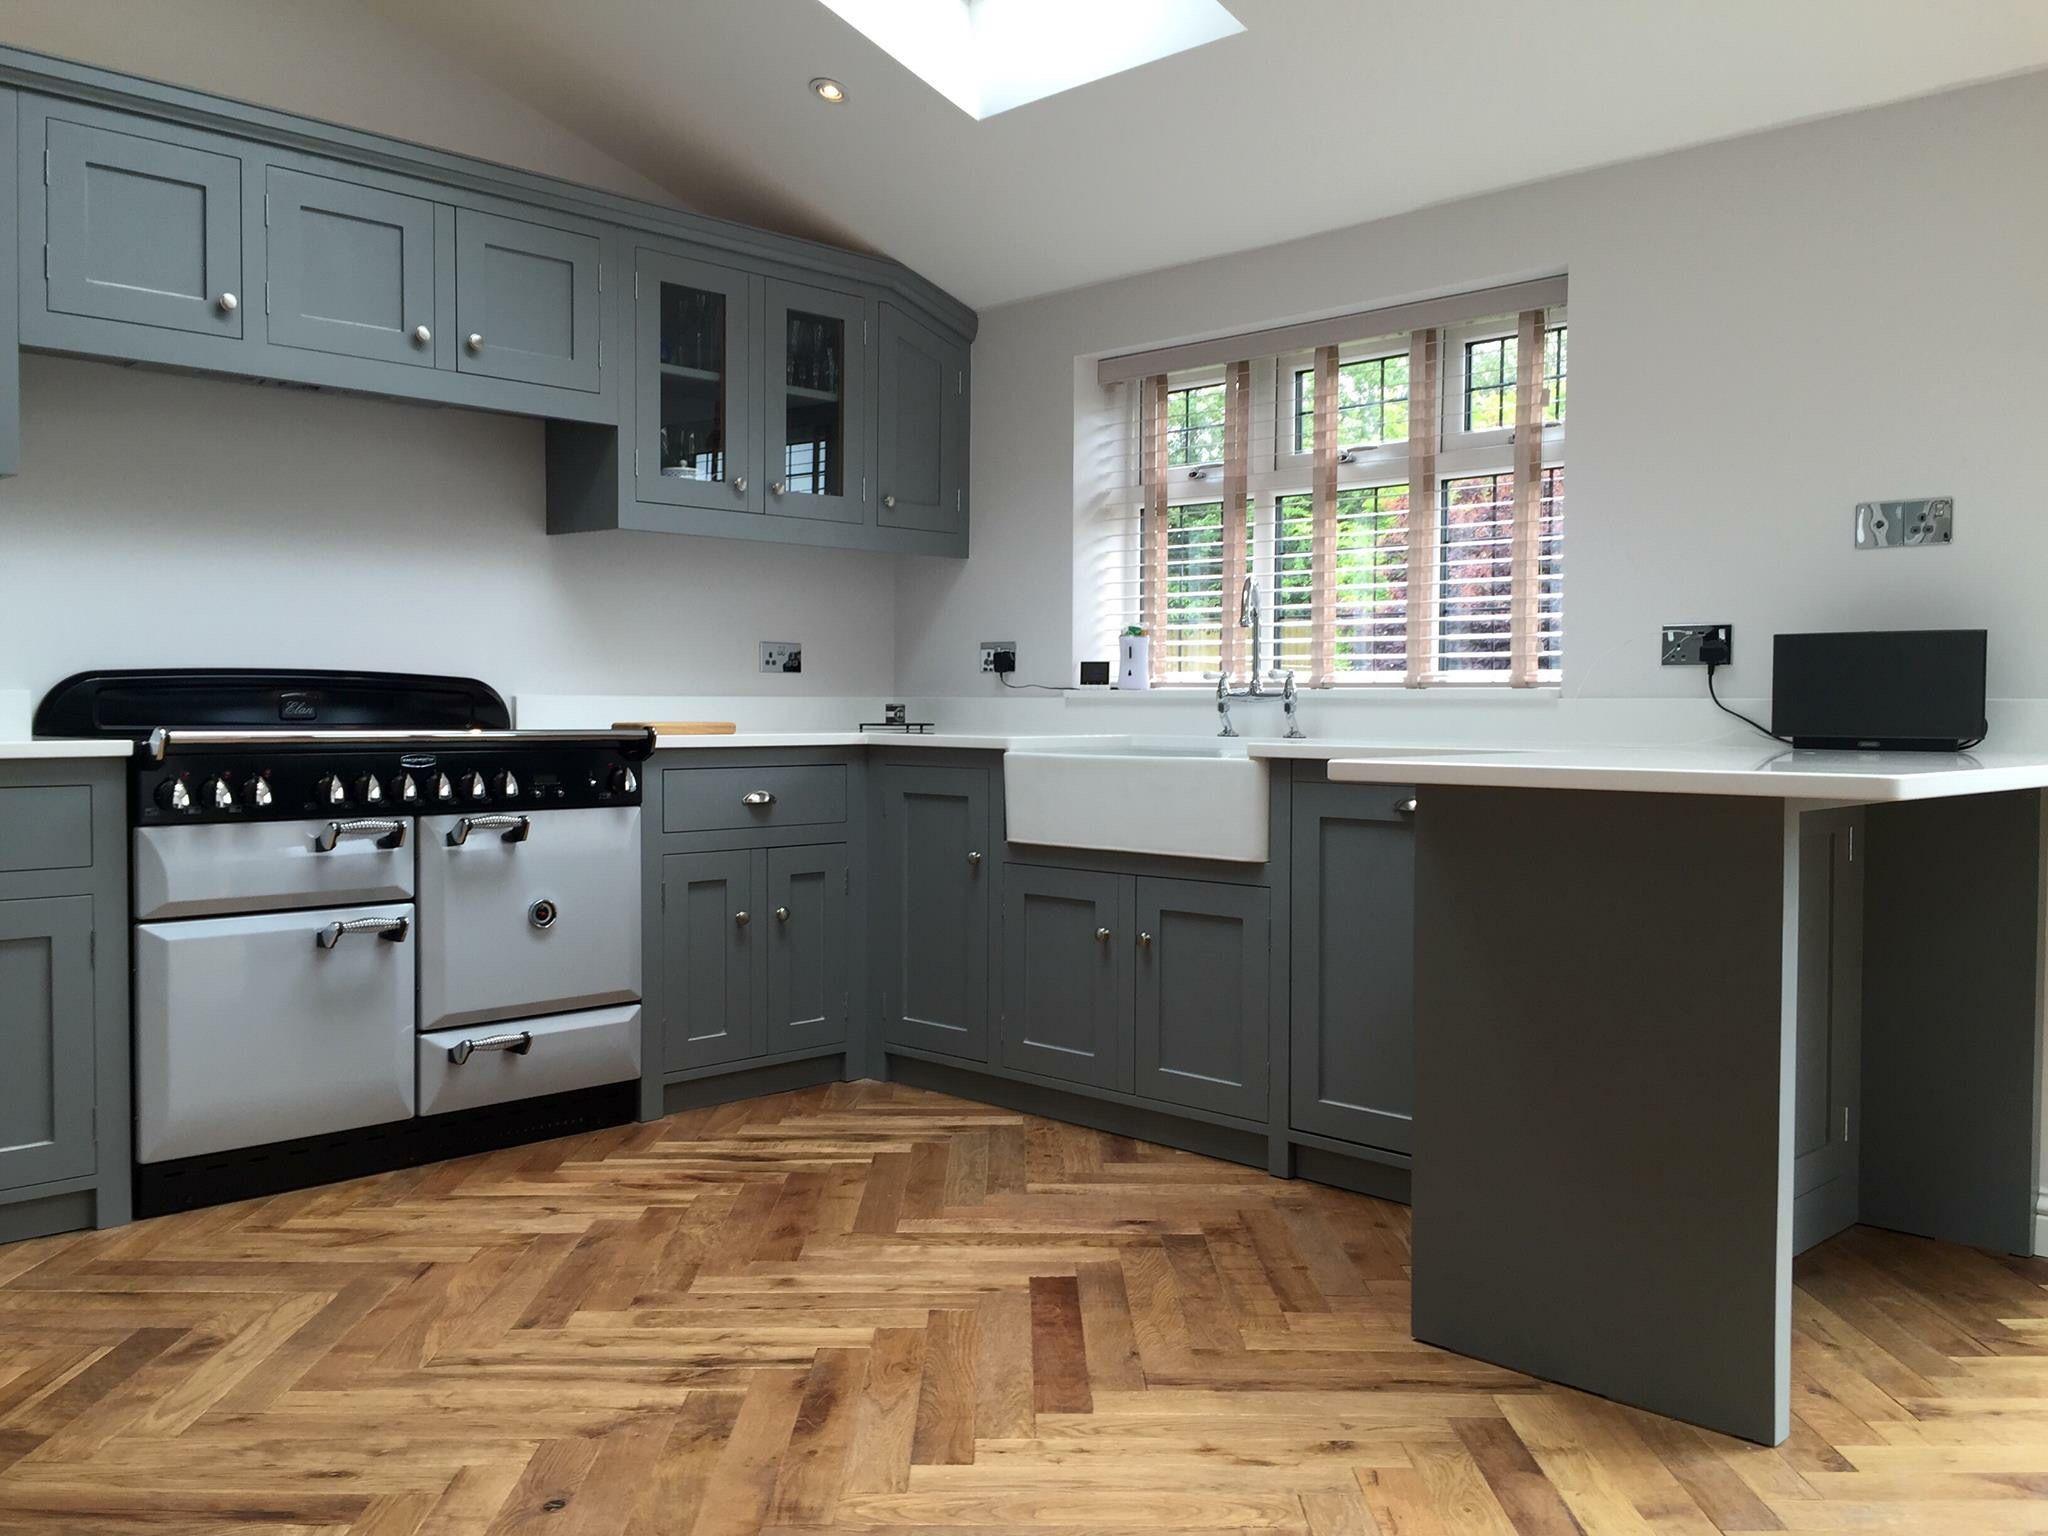 The wonderful plummet Handmade bespoke kitchens